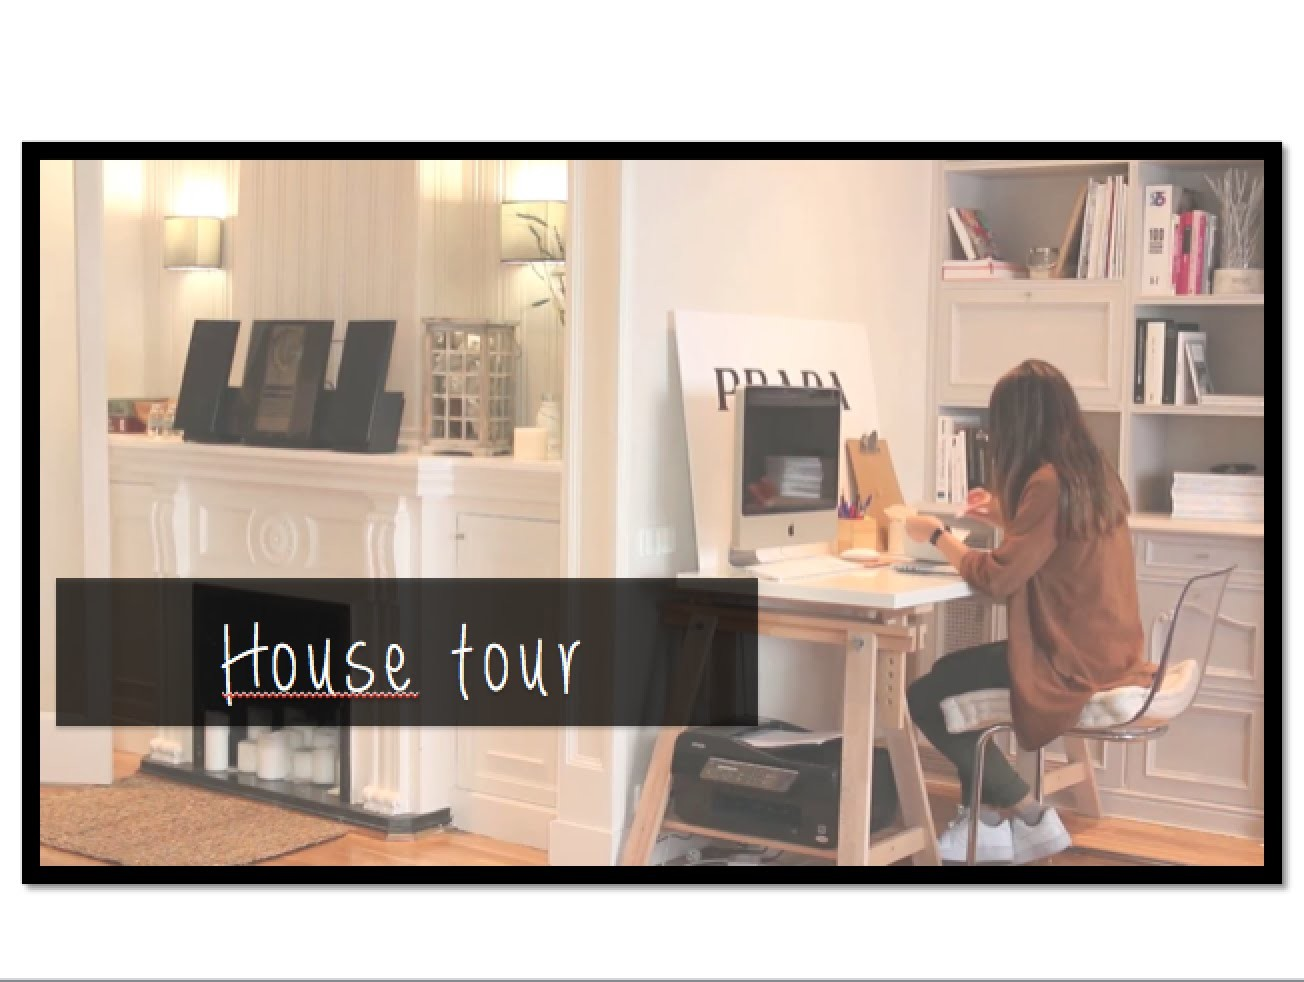 House tour | Marta Riumbau